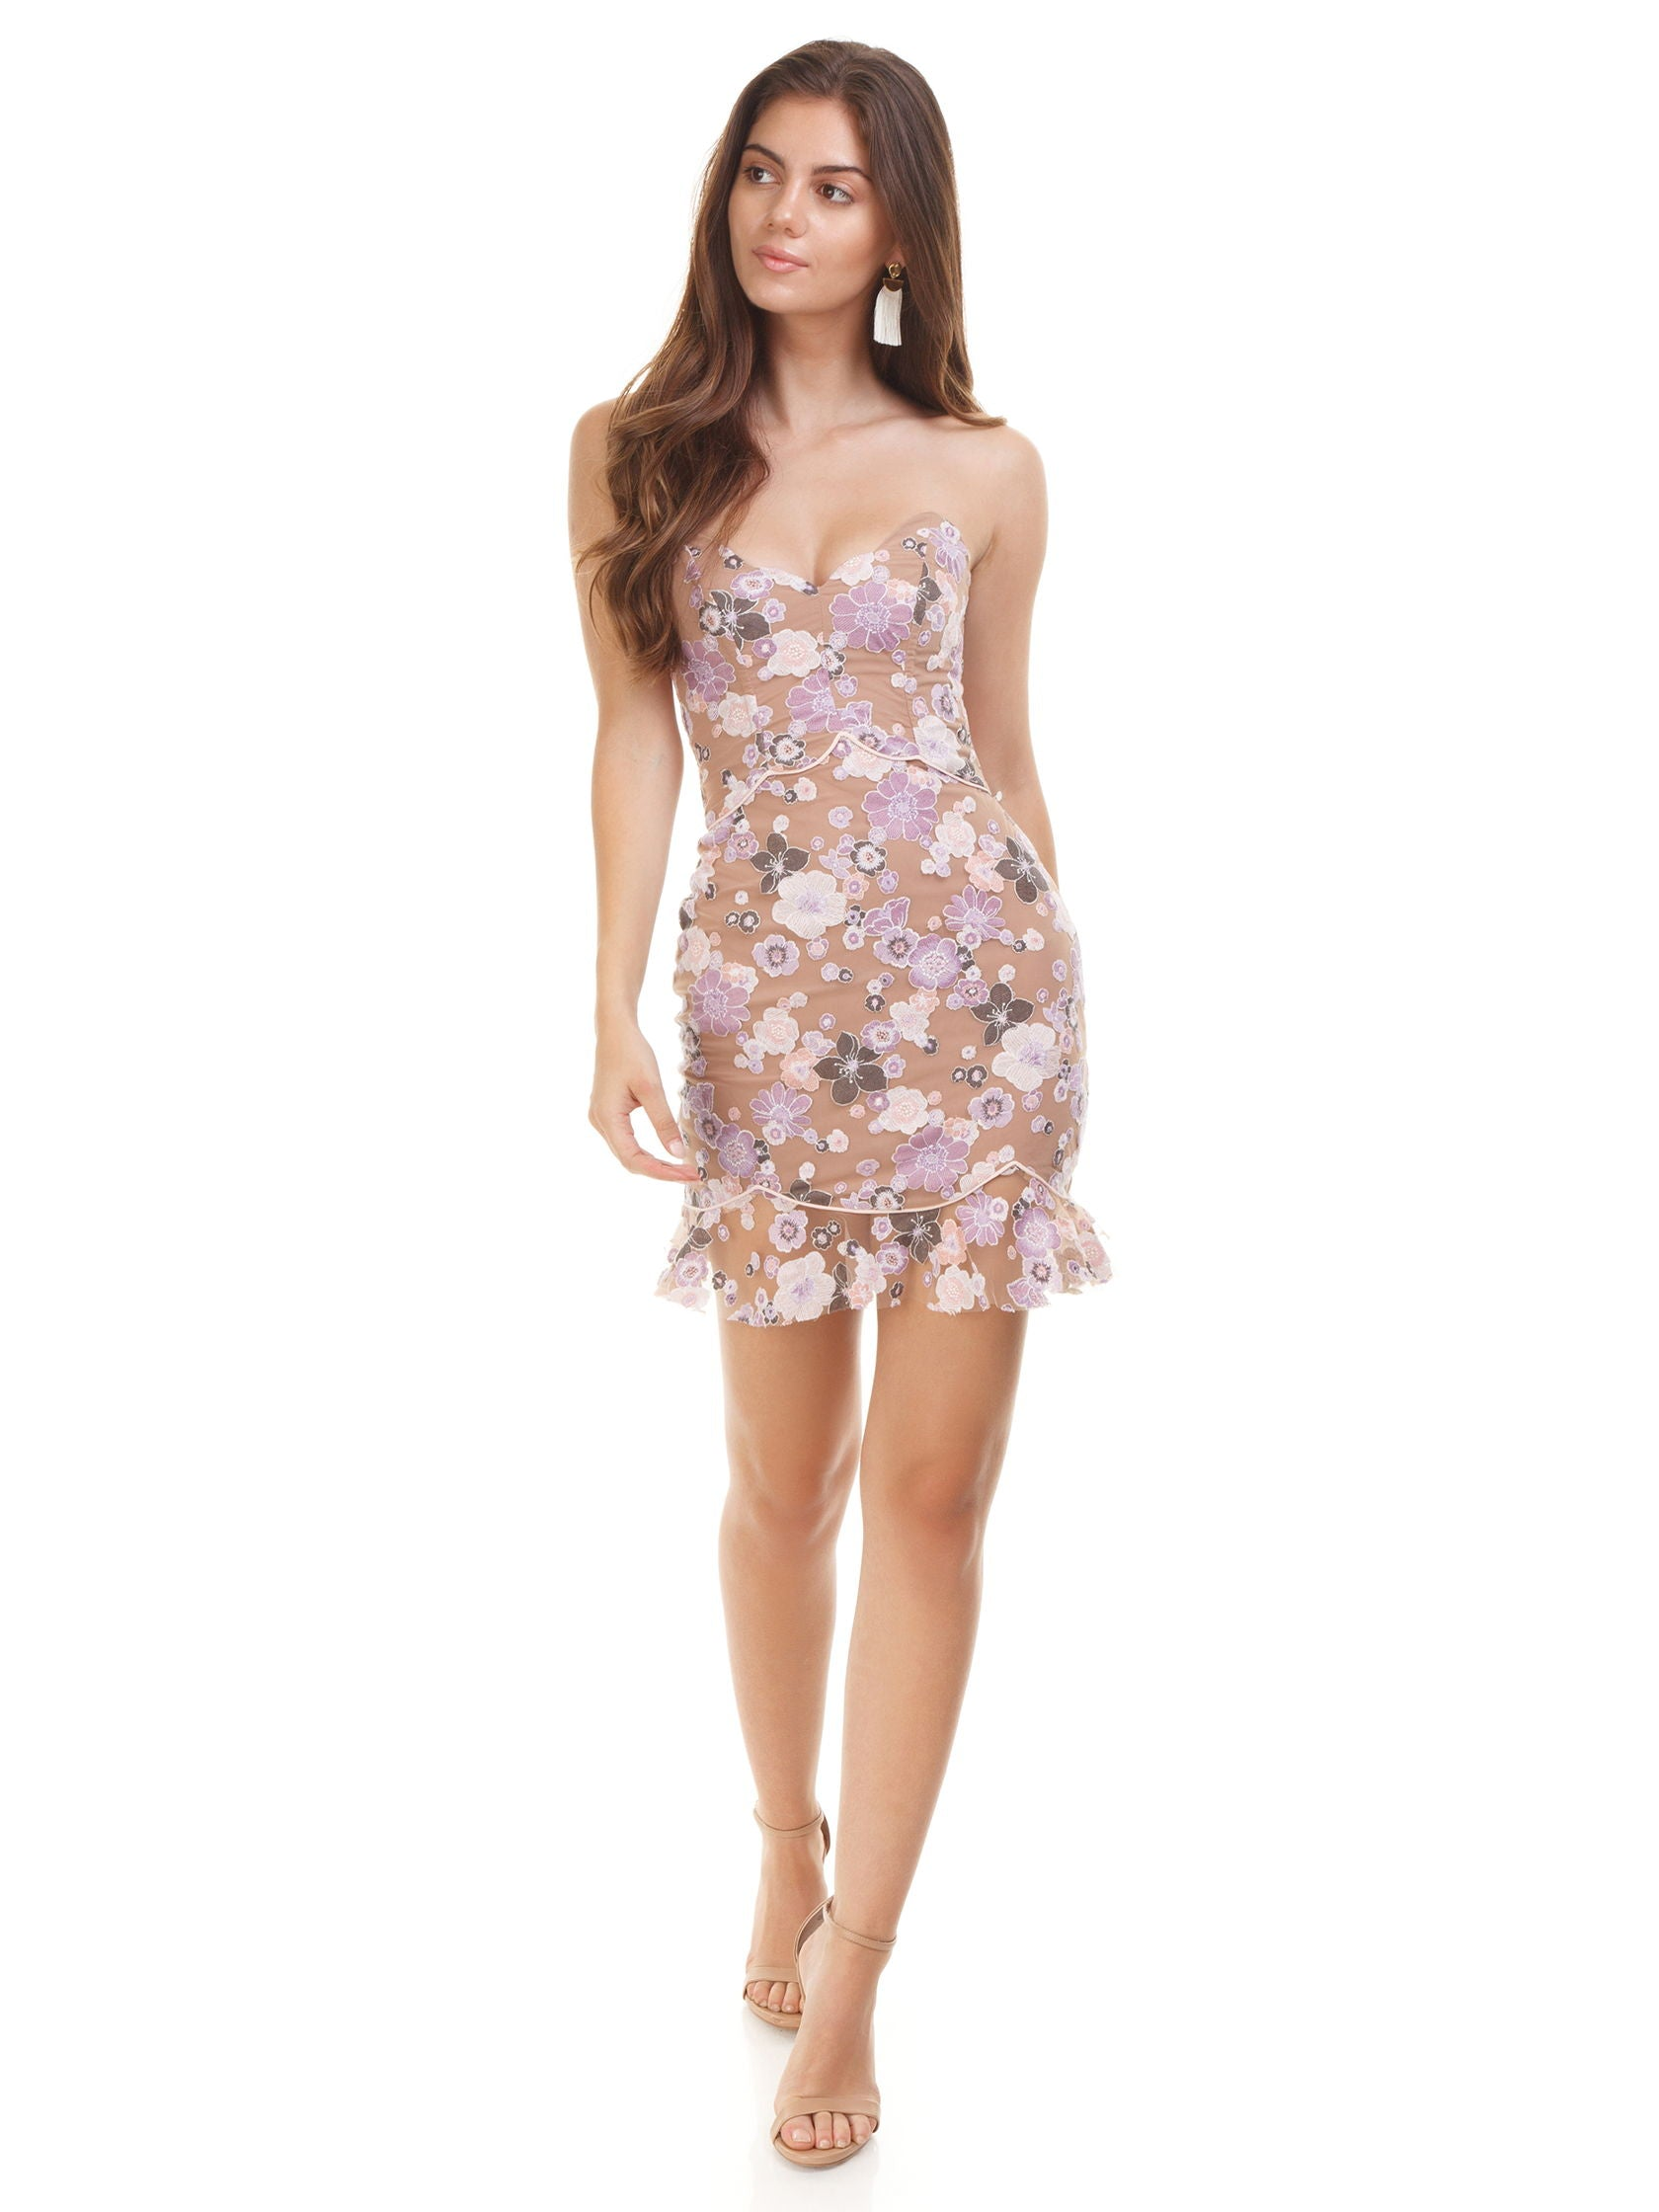 d537d6517a1 Girl outfit in a dress rental from For Love   Lemons called Posy Embroidery  Mini Dress